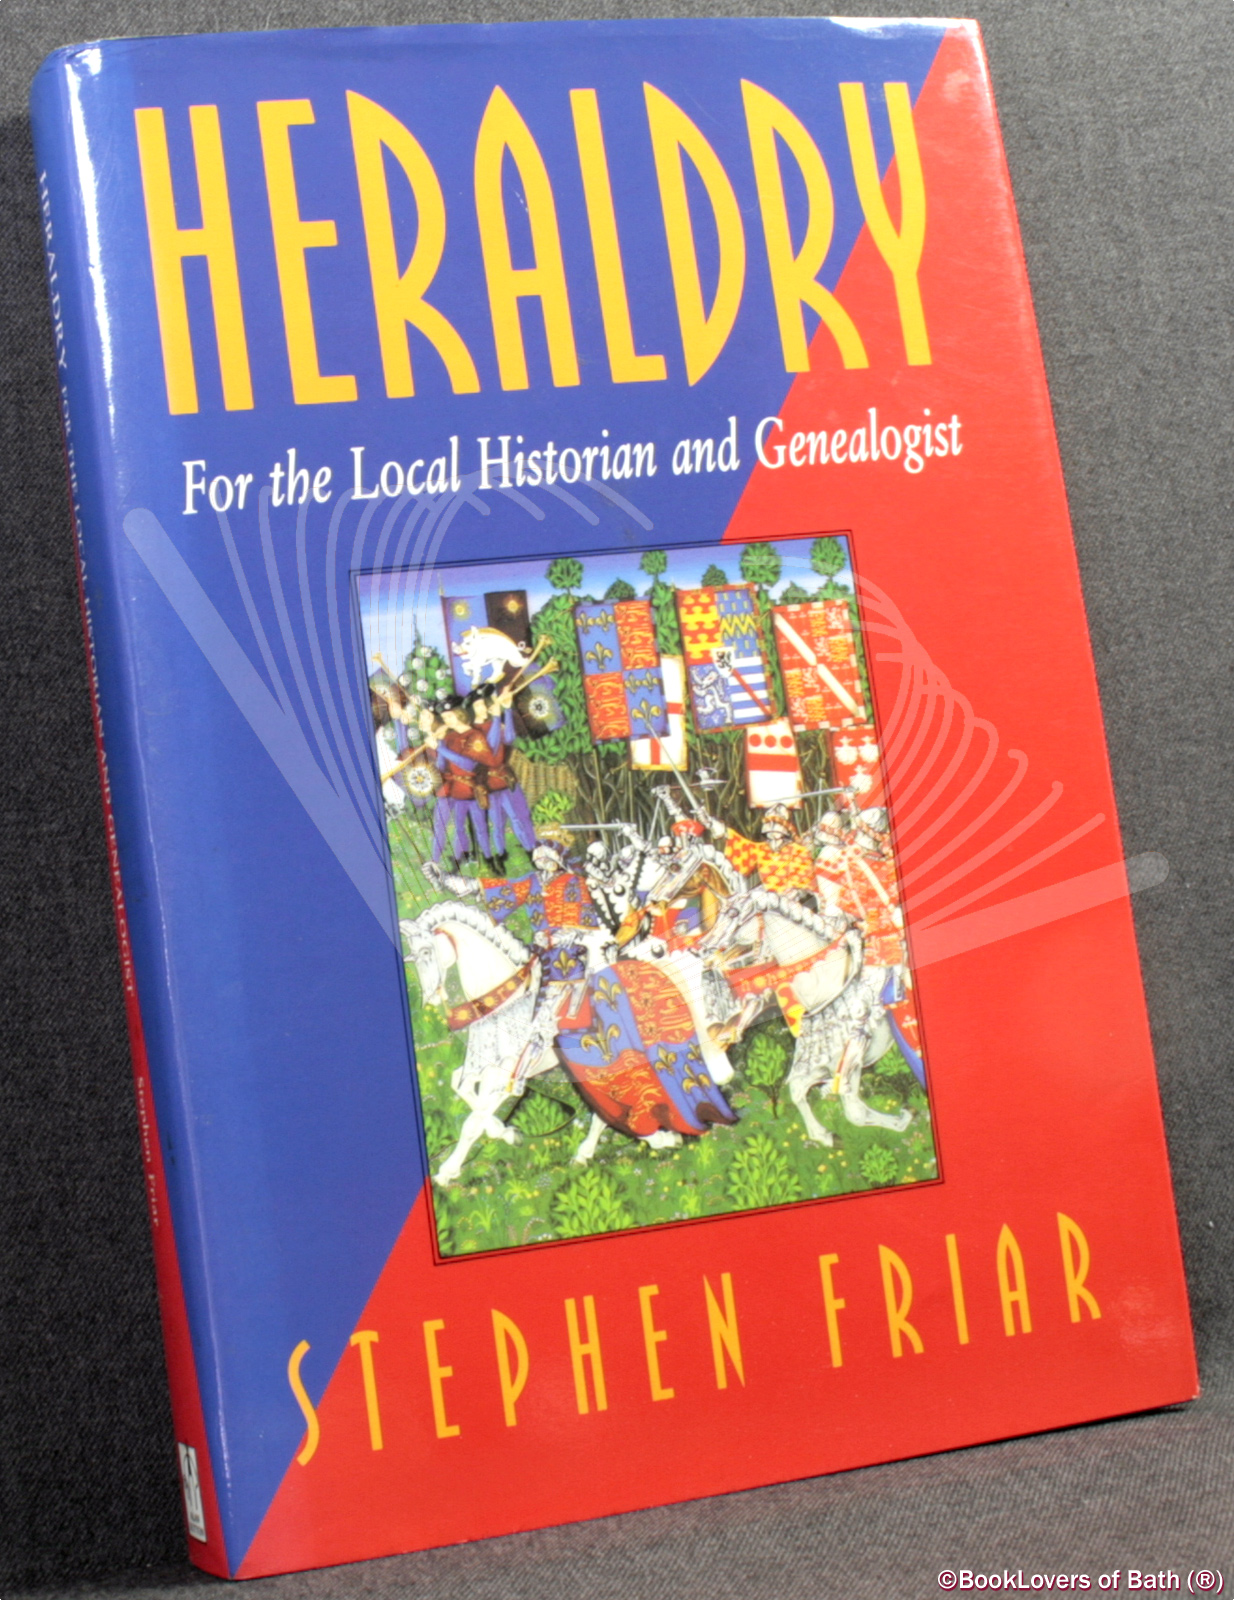 Heraldry for the Local Historian and Genealogist - Stephen Friar